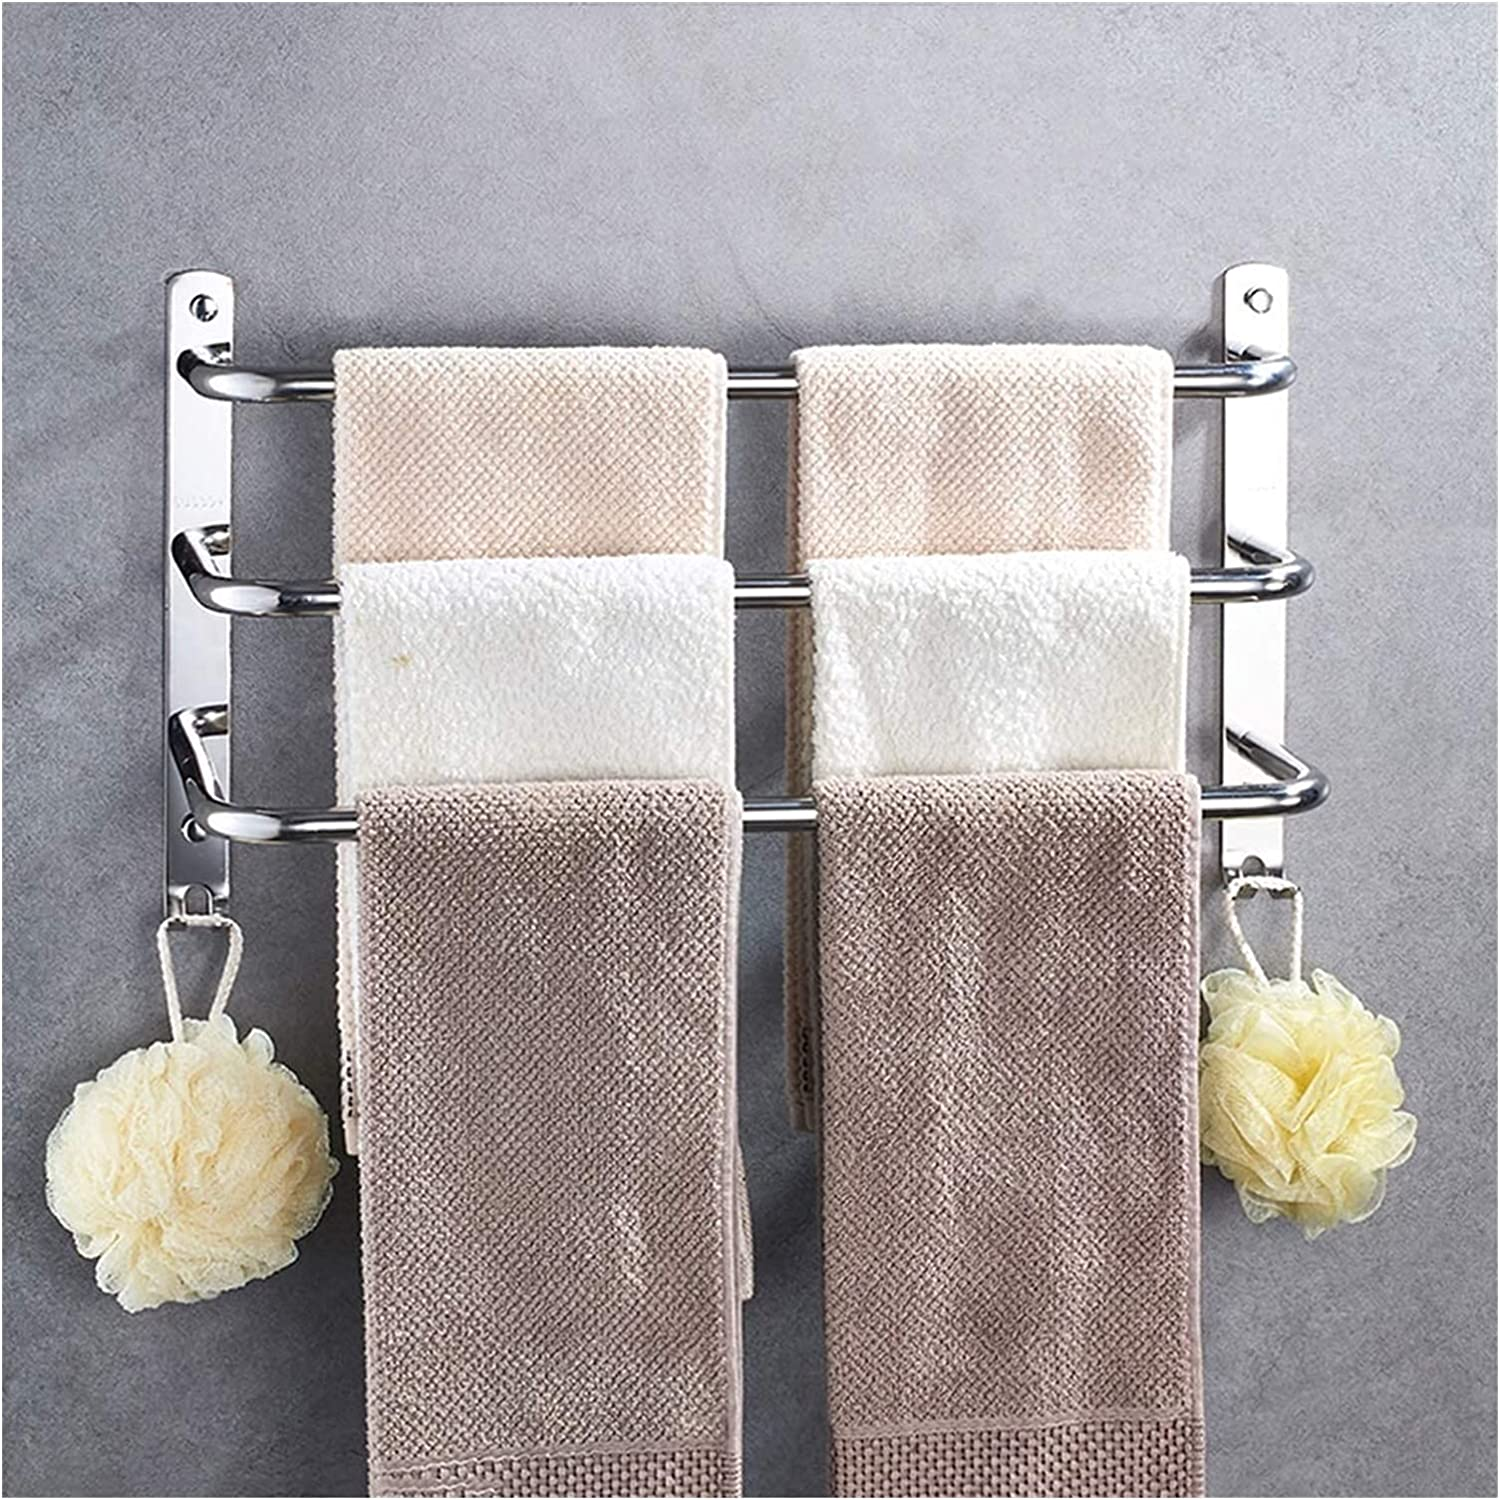 Towel Racks Rail Cash special price 3-Tier Bath with Hooks 304 Max 42% OFF SUS Stainless